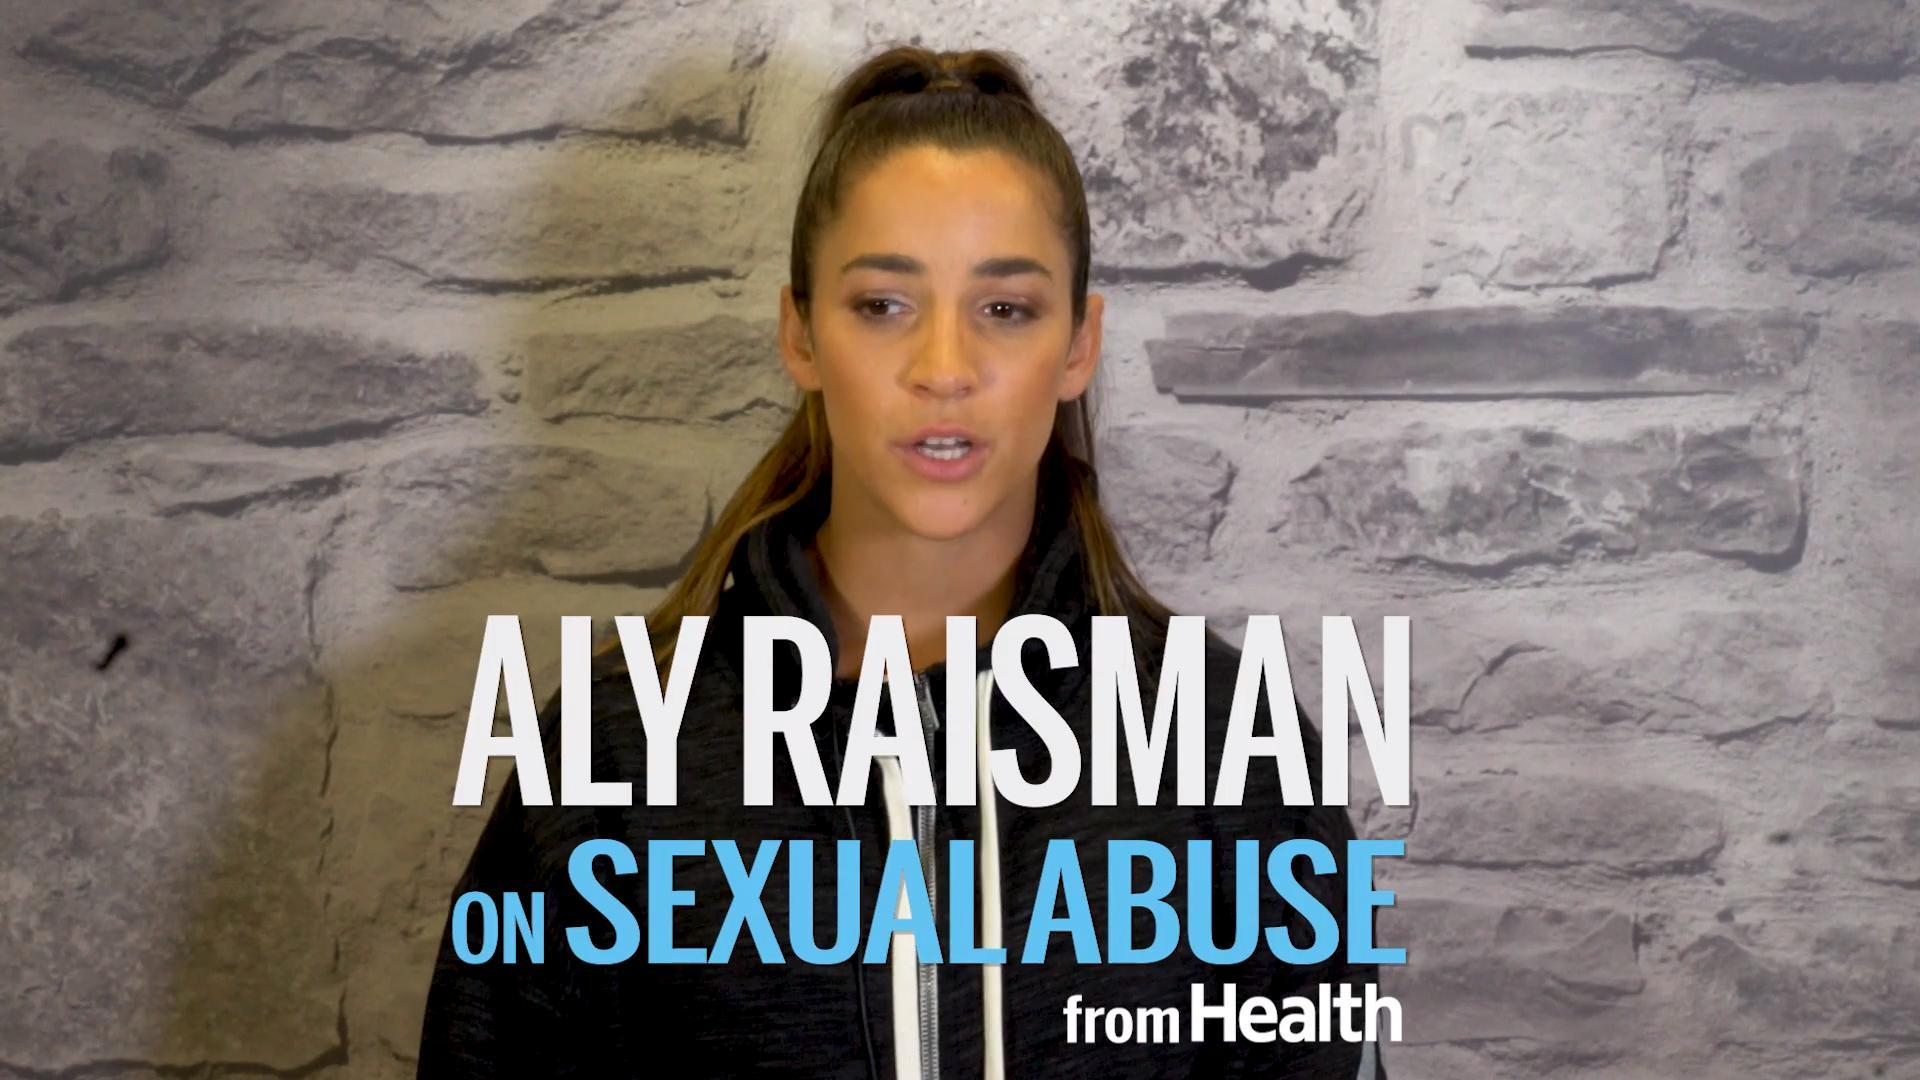 Gold Medal Gymnast Aly Raisman Says She Was Assaulted By